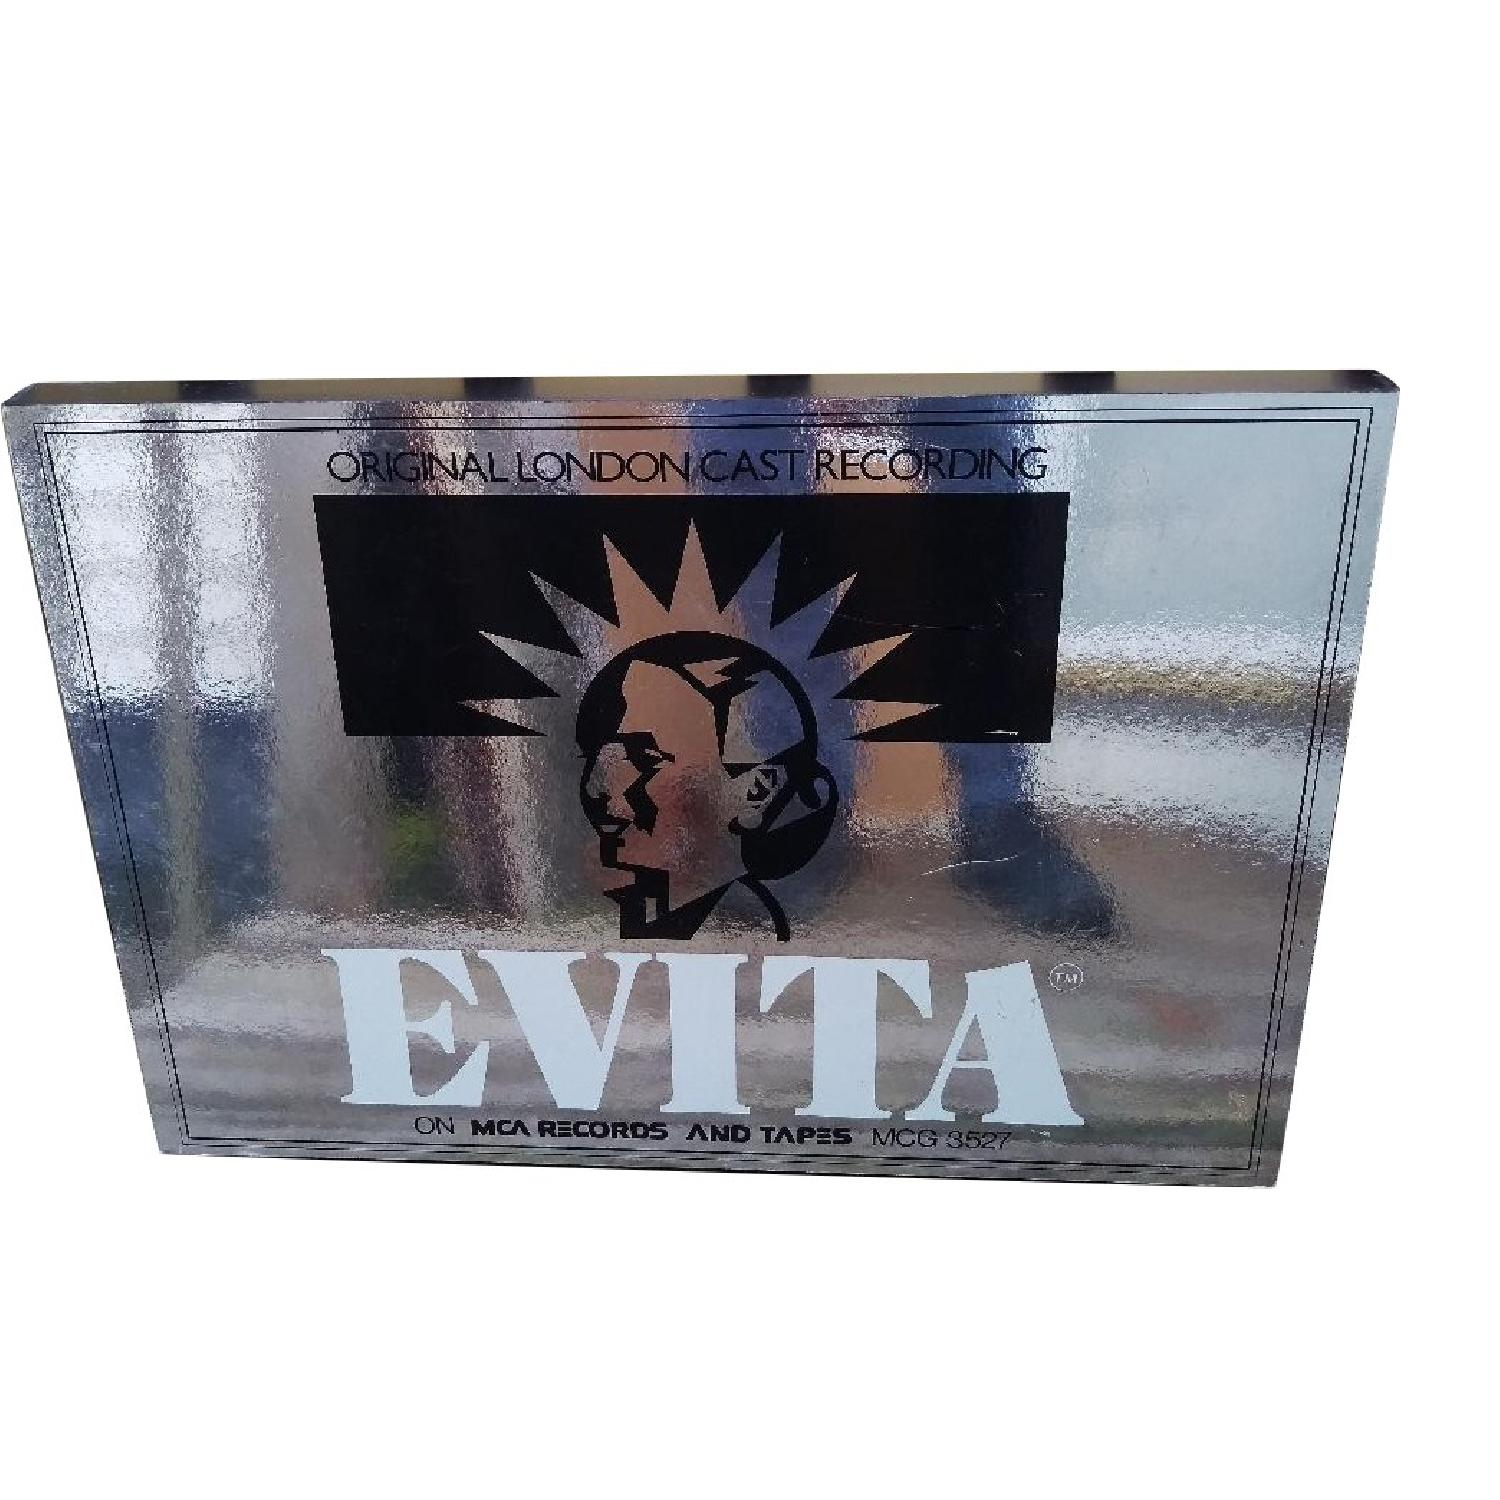 1970s Wood Evita MCA Records London Cast Store Sign